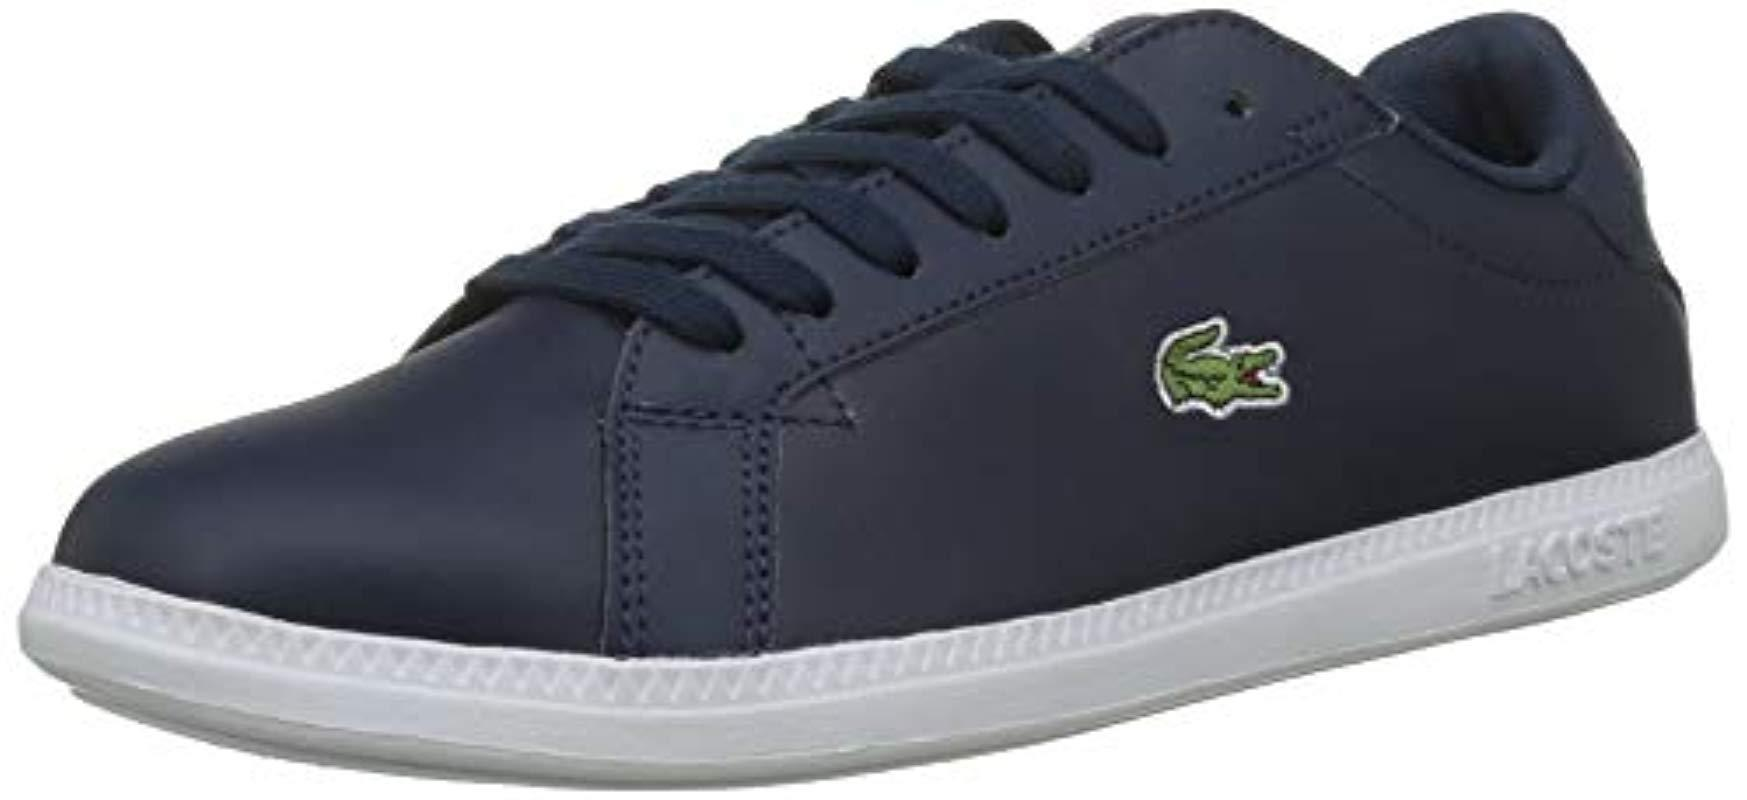 ab90d5573 Lacoste Graduate Bl 1 Sfa Trainers in Blue - Save 12% - Lyst